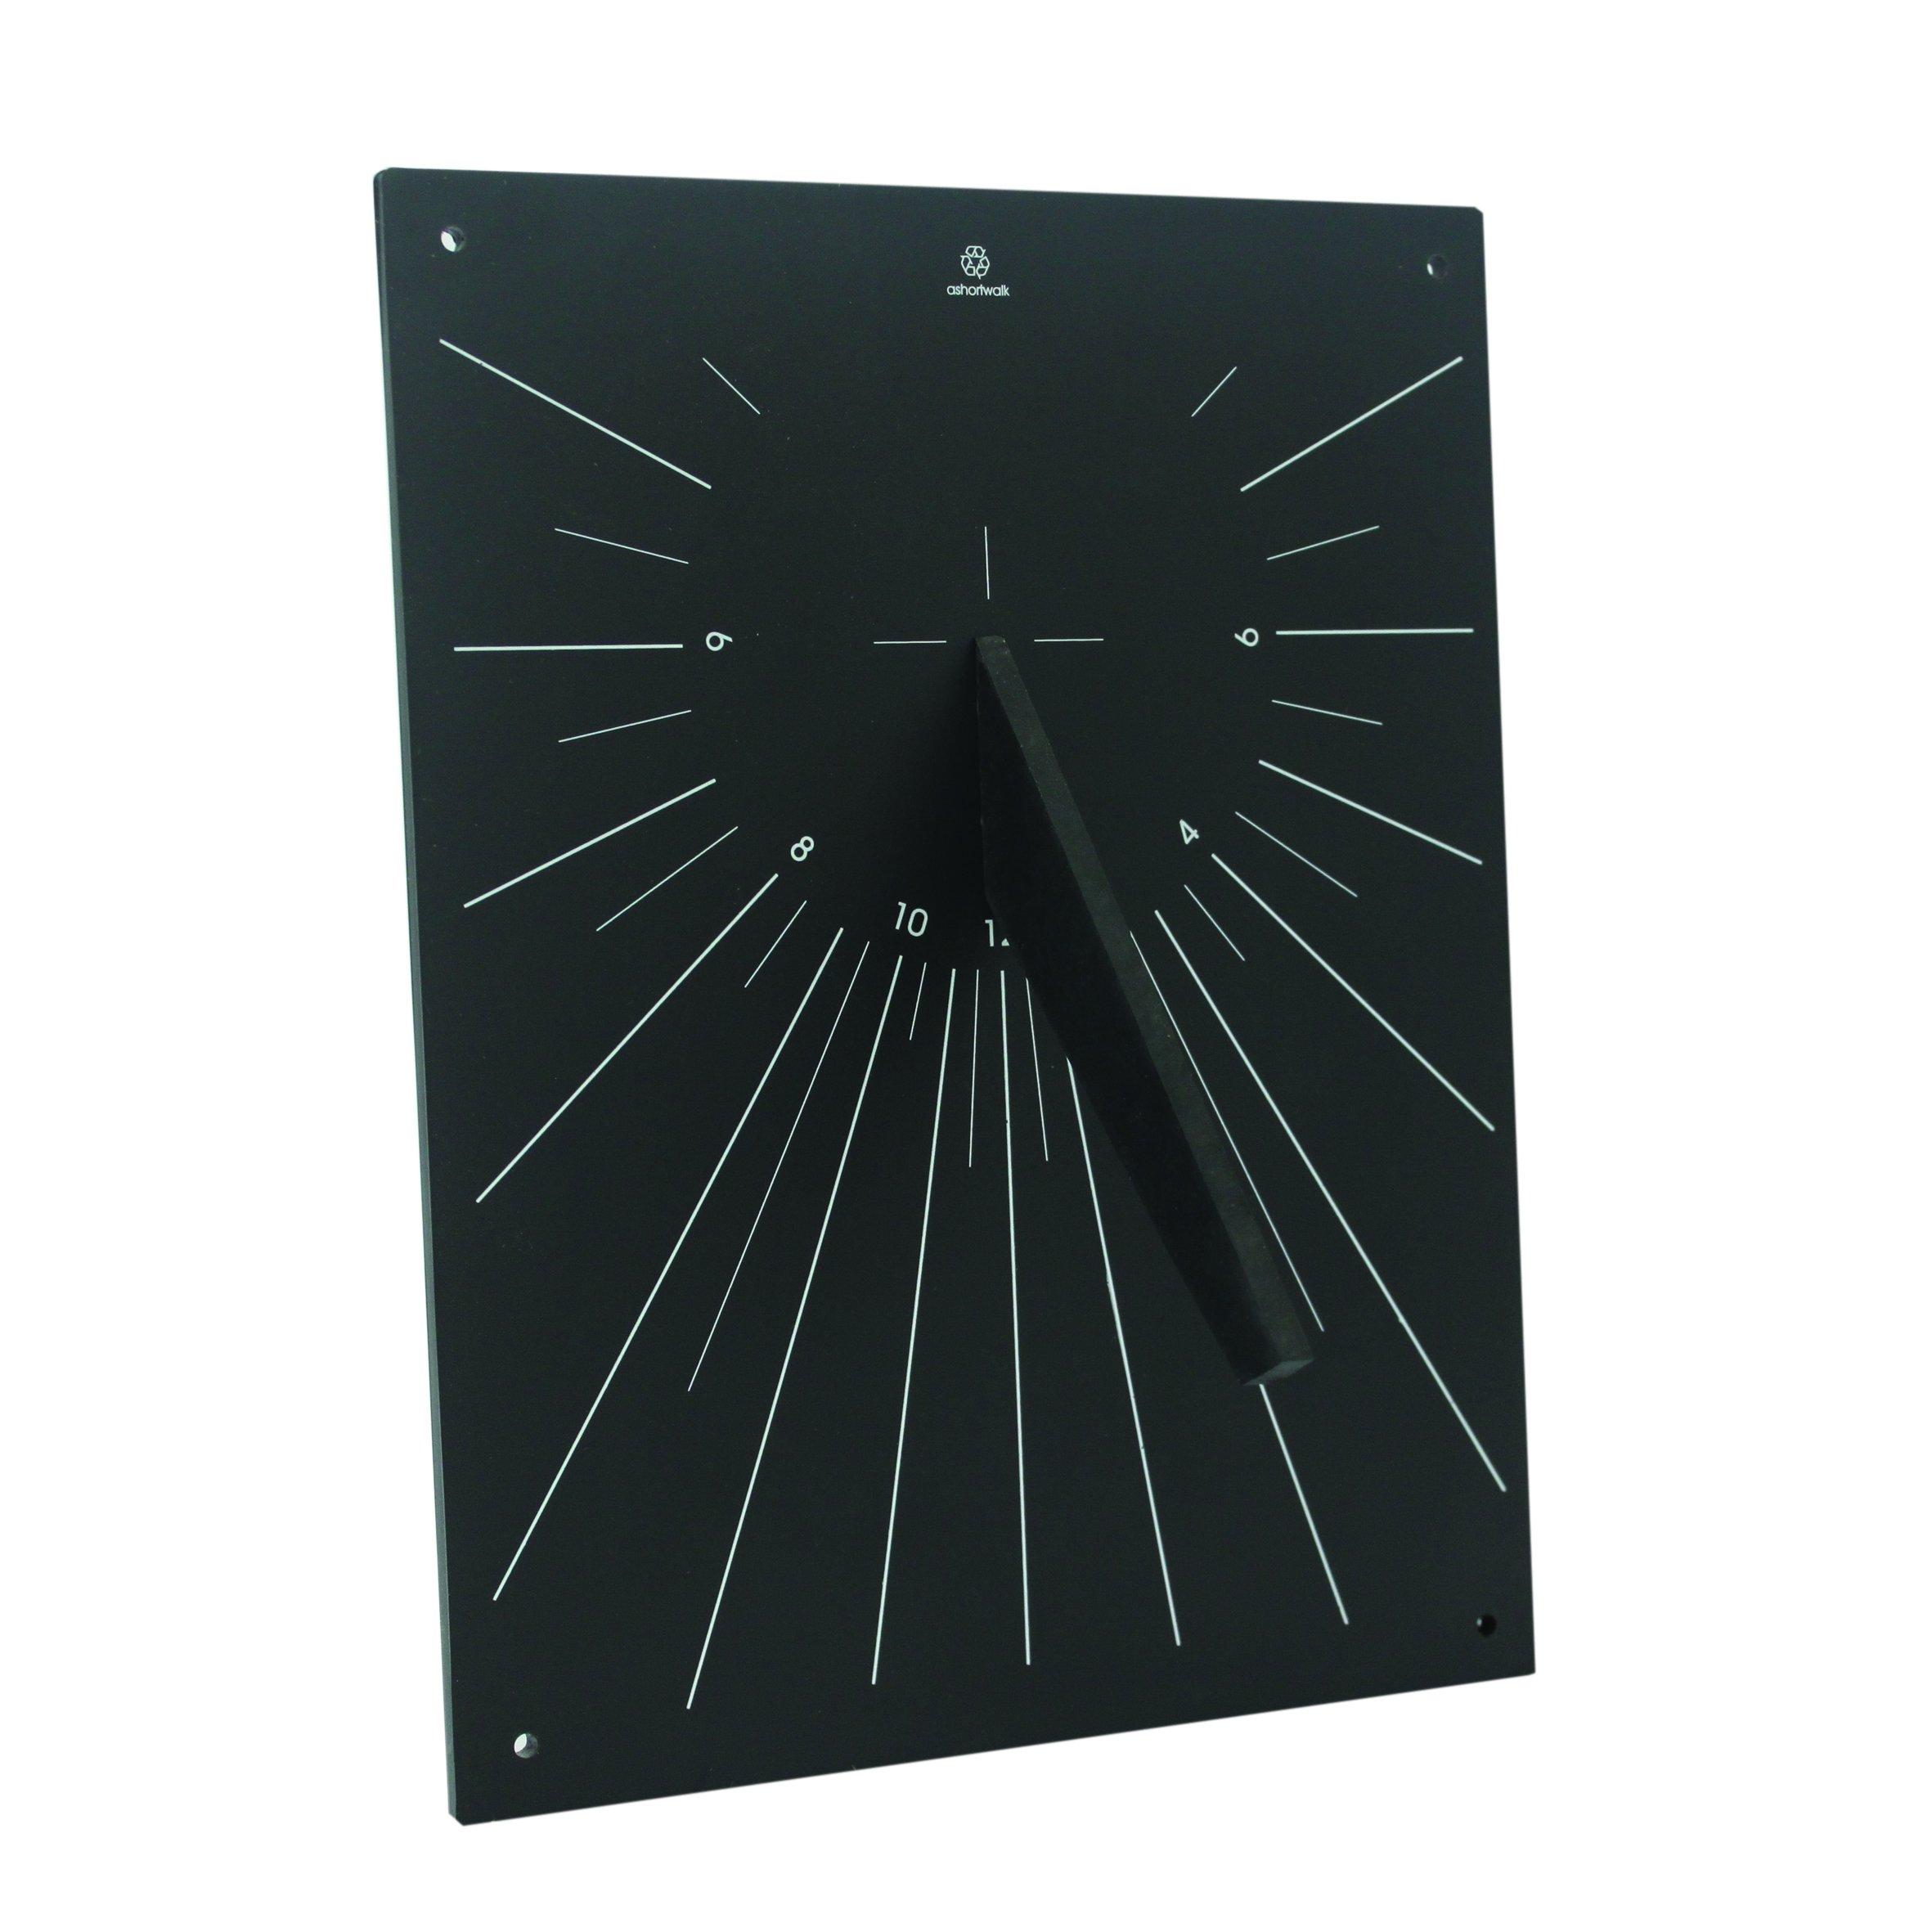 Bosmere W435 Eco Wall Mounted Sundial Made from Recycled Materials, Black by Bosmere